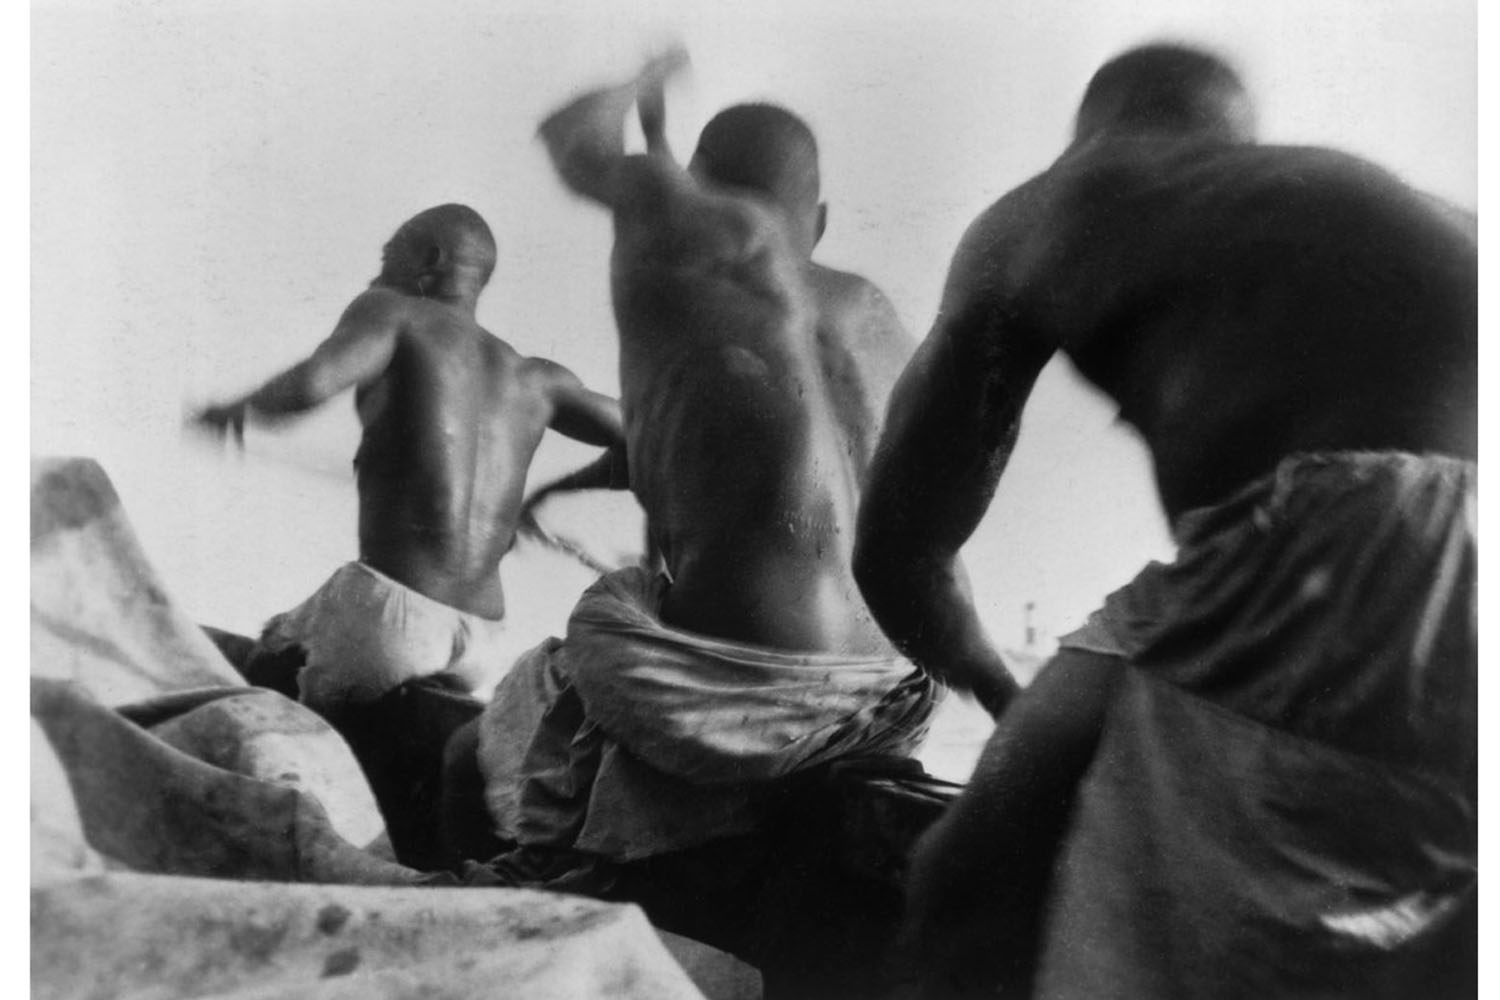 Rowers in the Ivory Coast, 1931